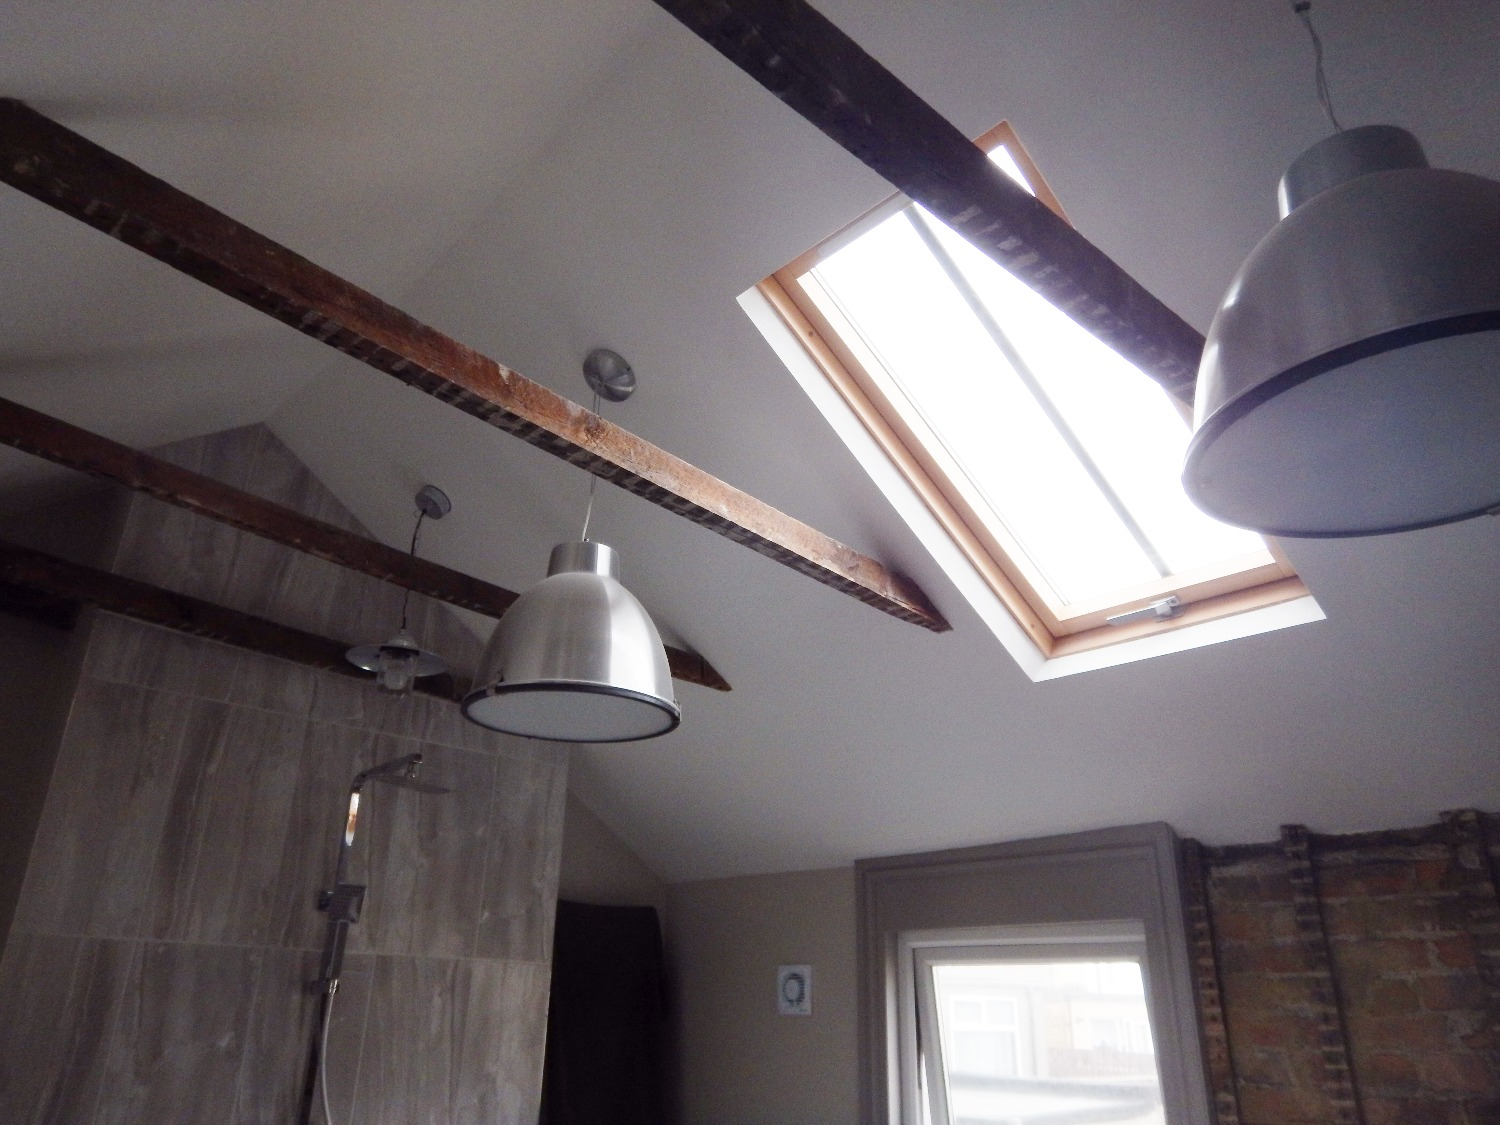 Velux Window and Removal of ceiling